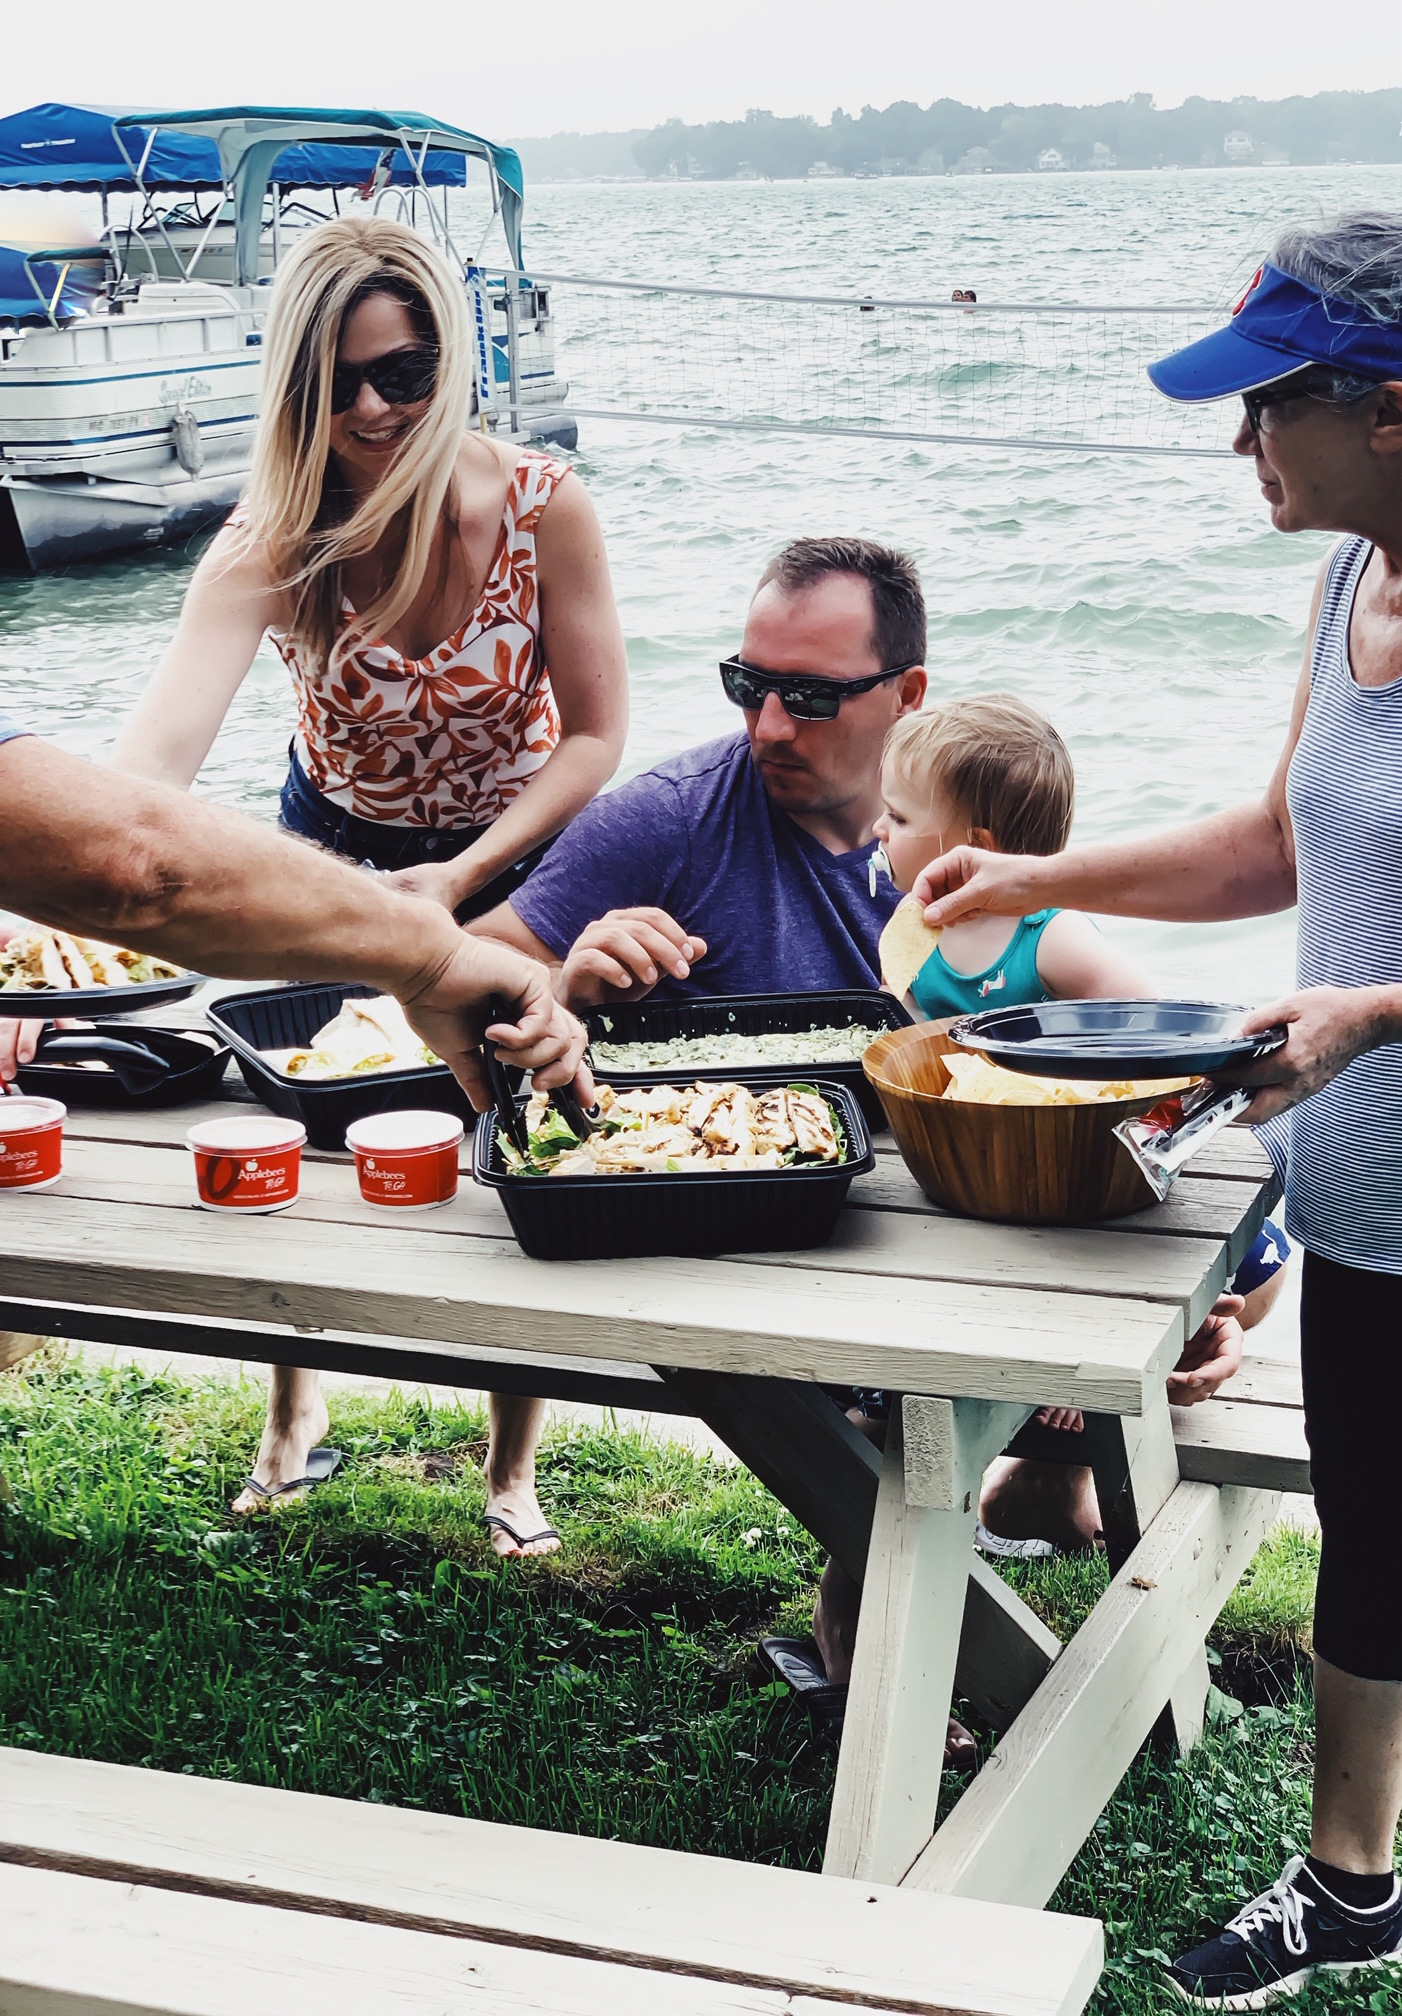 Applebee's Catering By The Lake. Choosing Applebee's for Summer Catering. Summer catering options. Best summer catering ideas. How to simplify party planning. #sponsored #Applebees #catering